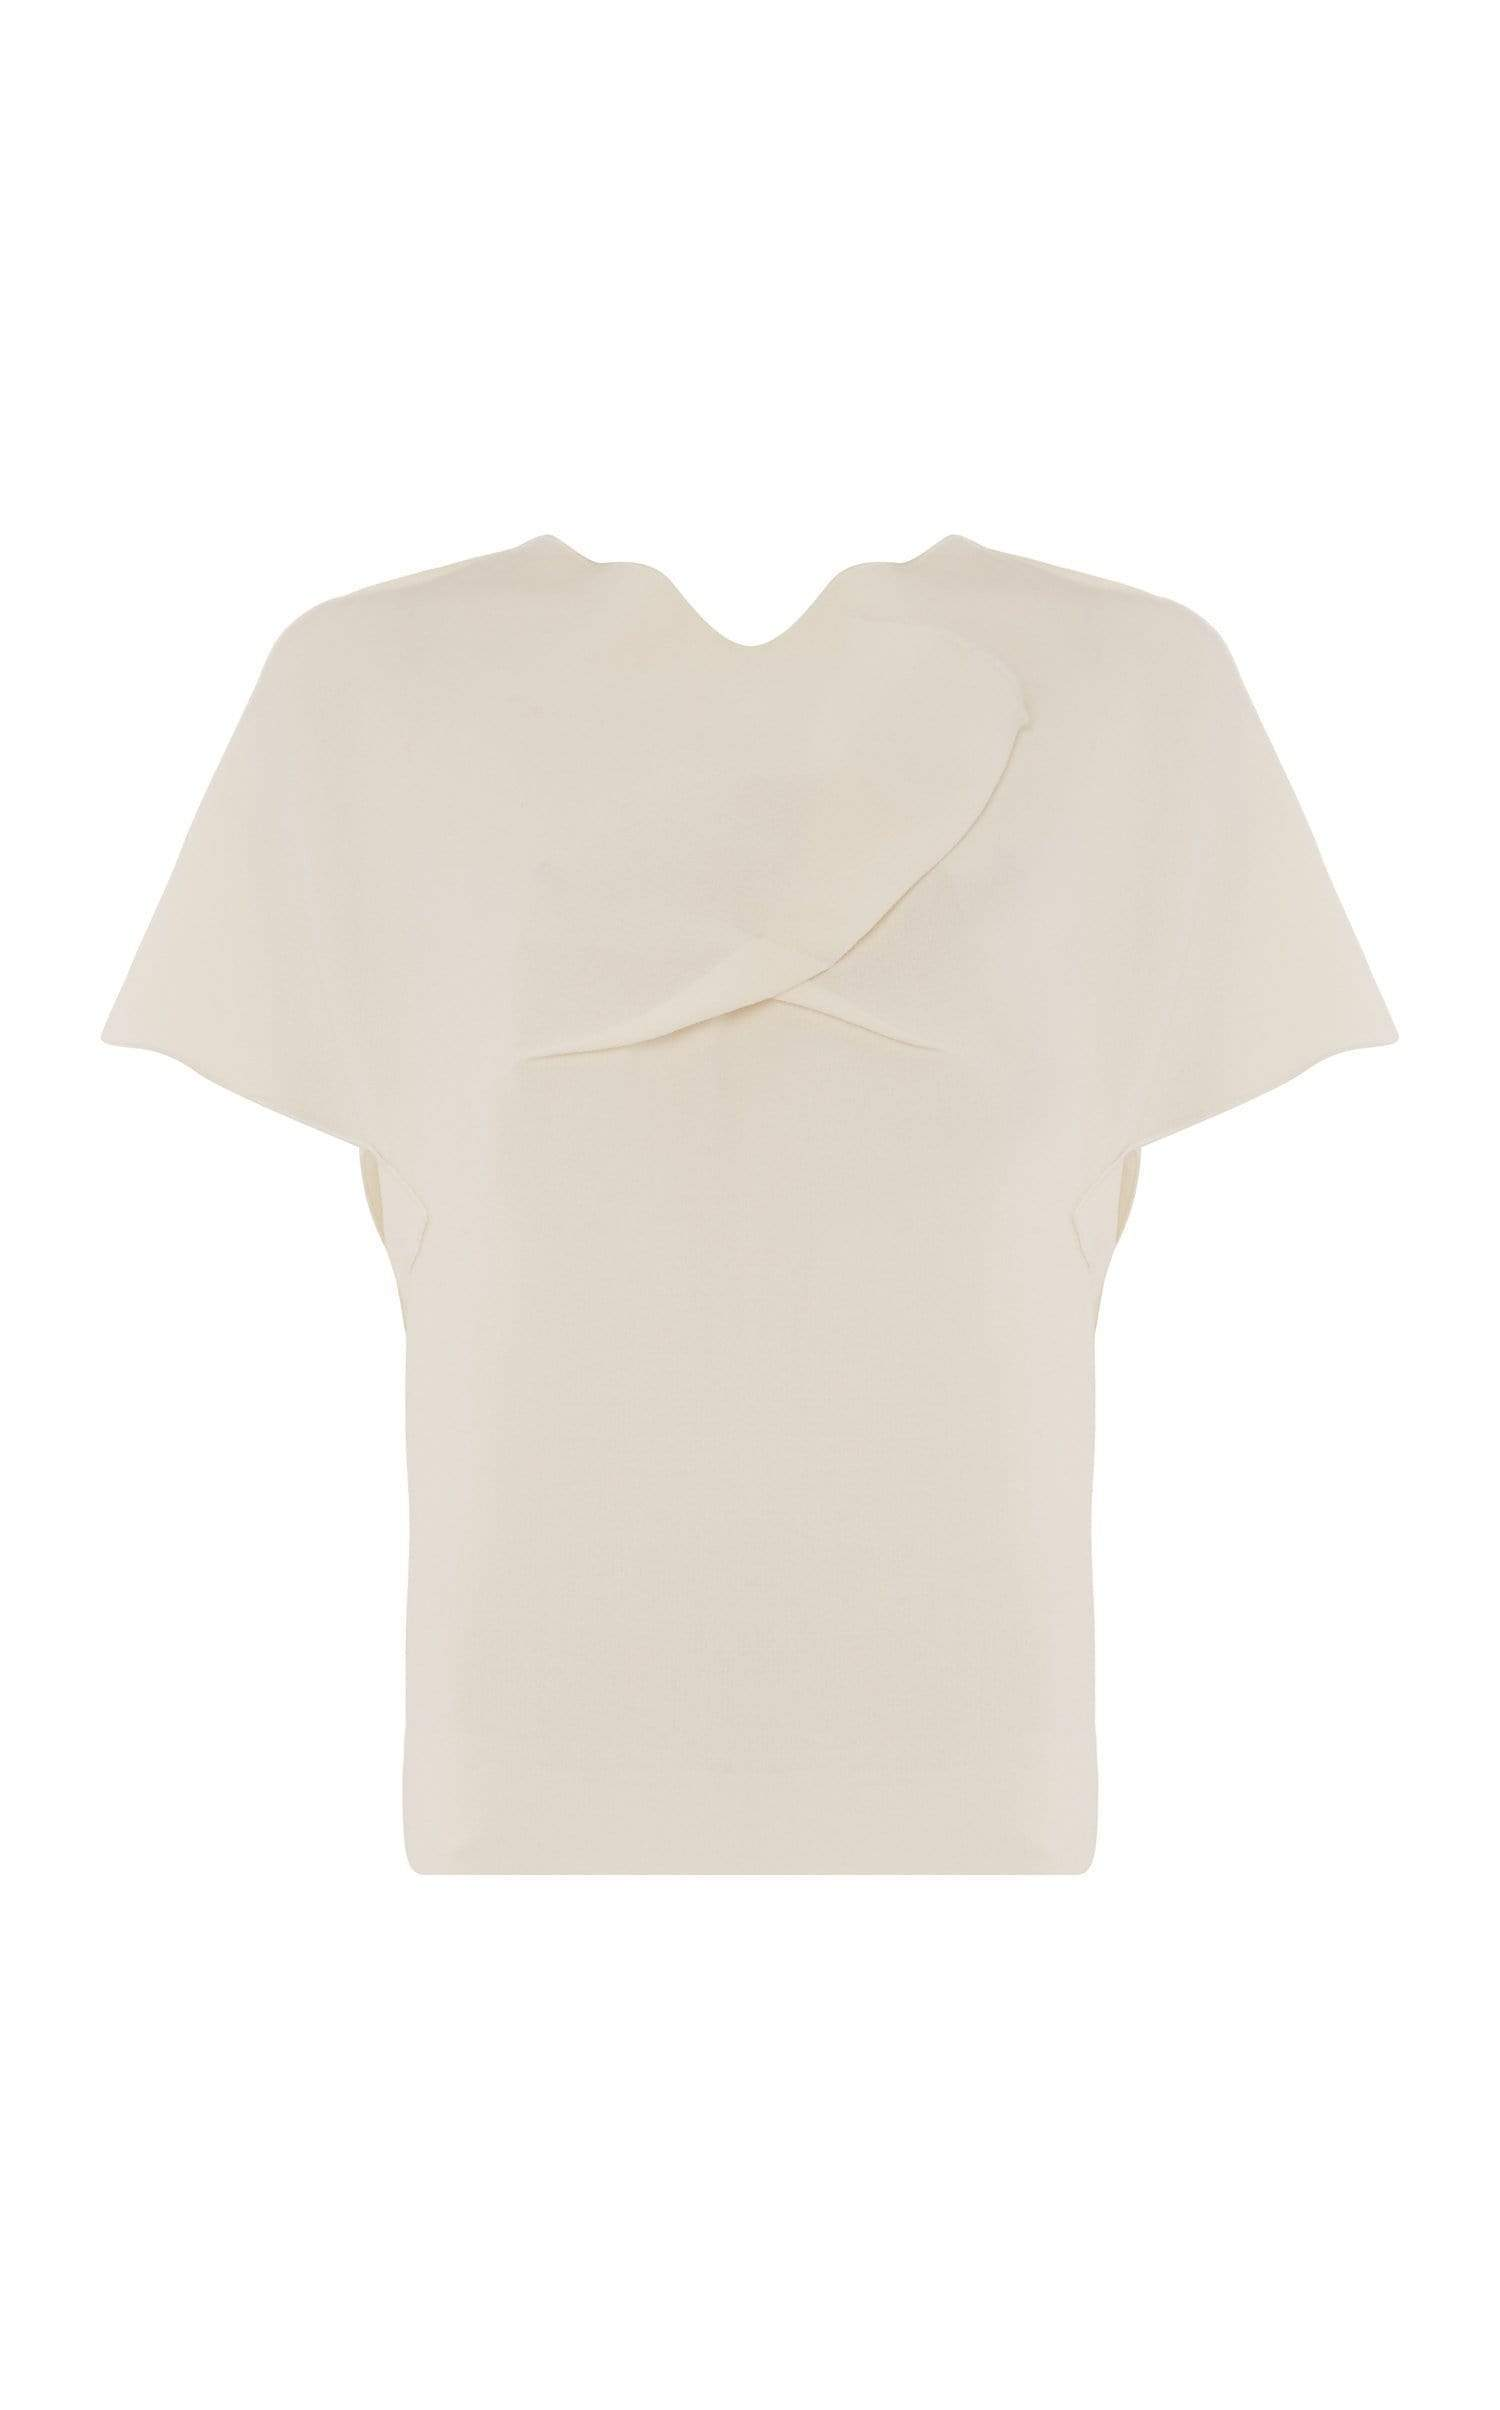 Lindsay Top In White from Roland Mouret